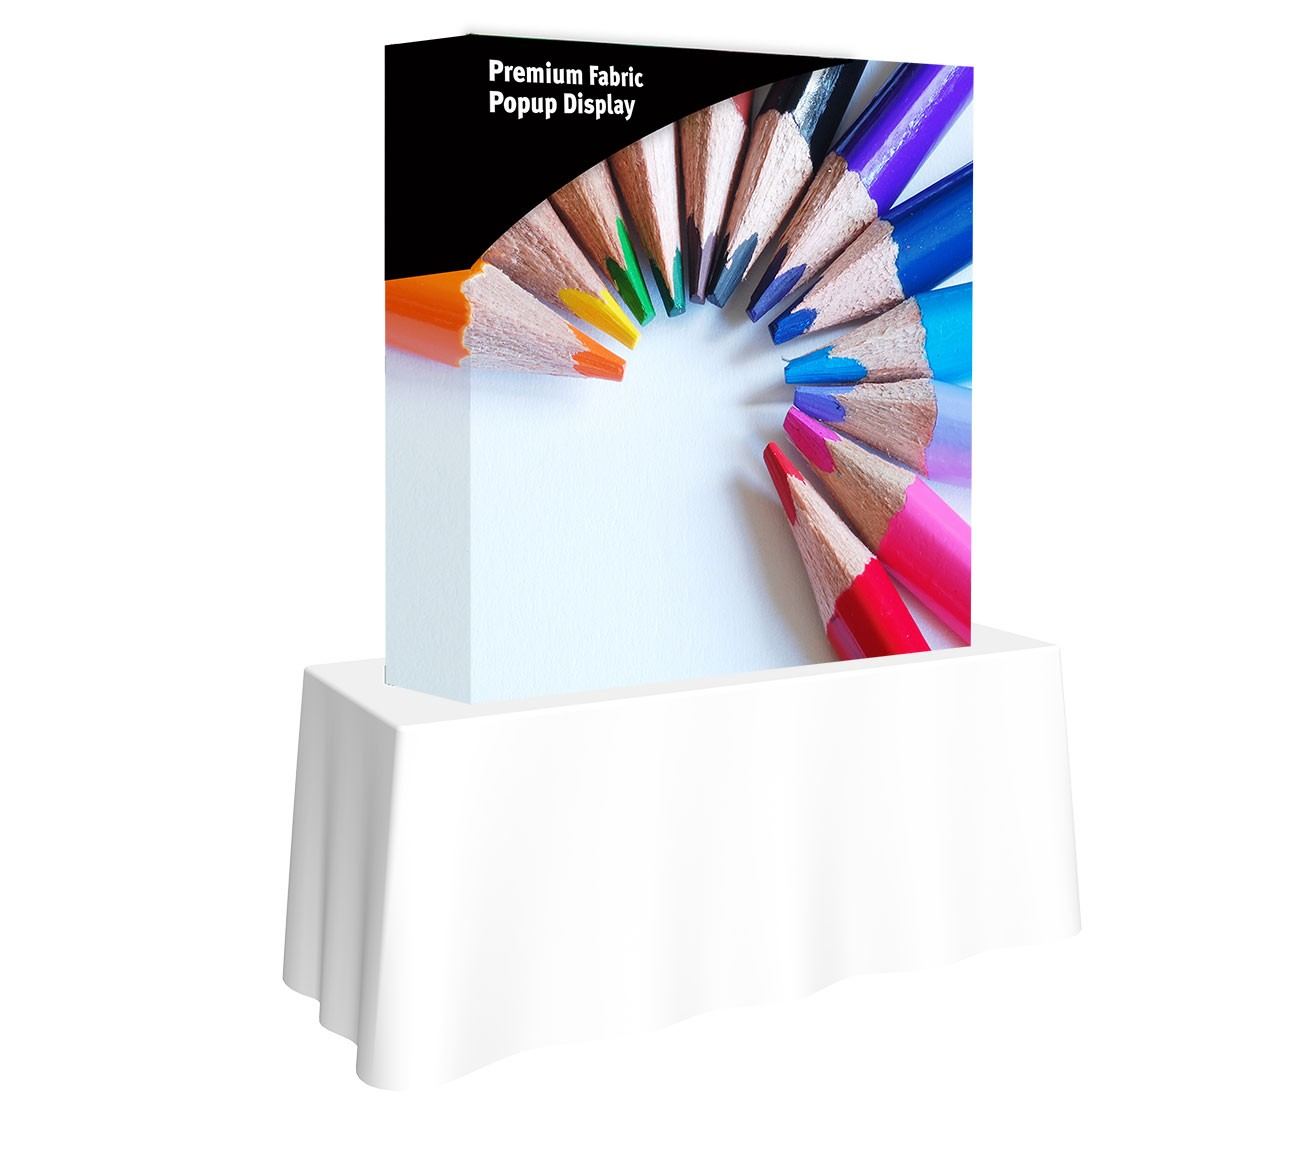 Premium Fabric Popup 2x2 Table Top Display